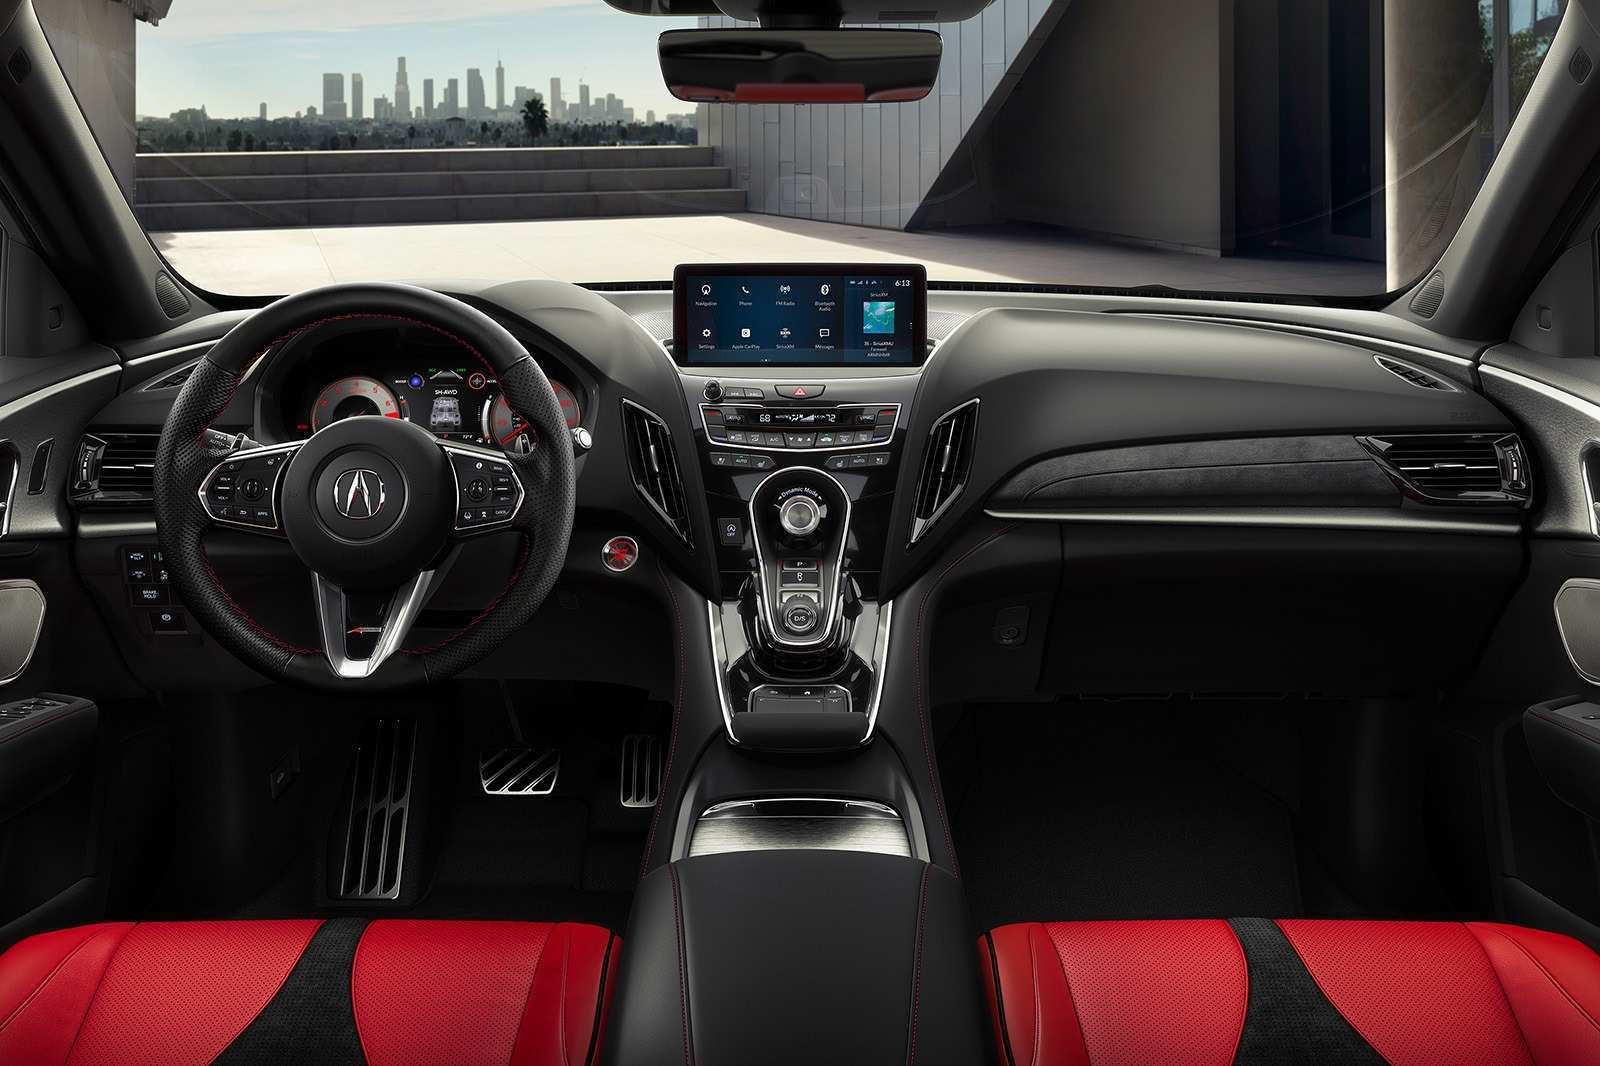 48 Gallery of The 2019 Acura Rdx Edmunds Review And Price First Drive with The 2019 Acura Rdx Edmunds Review And Price